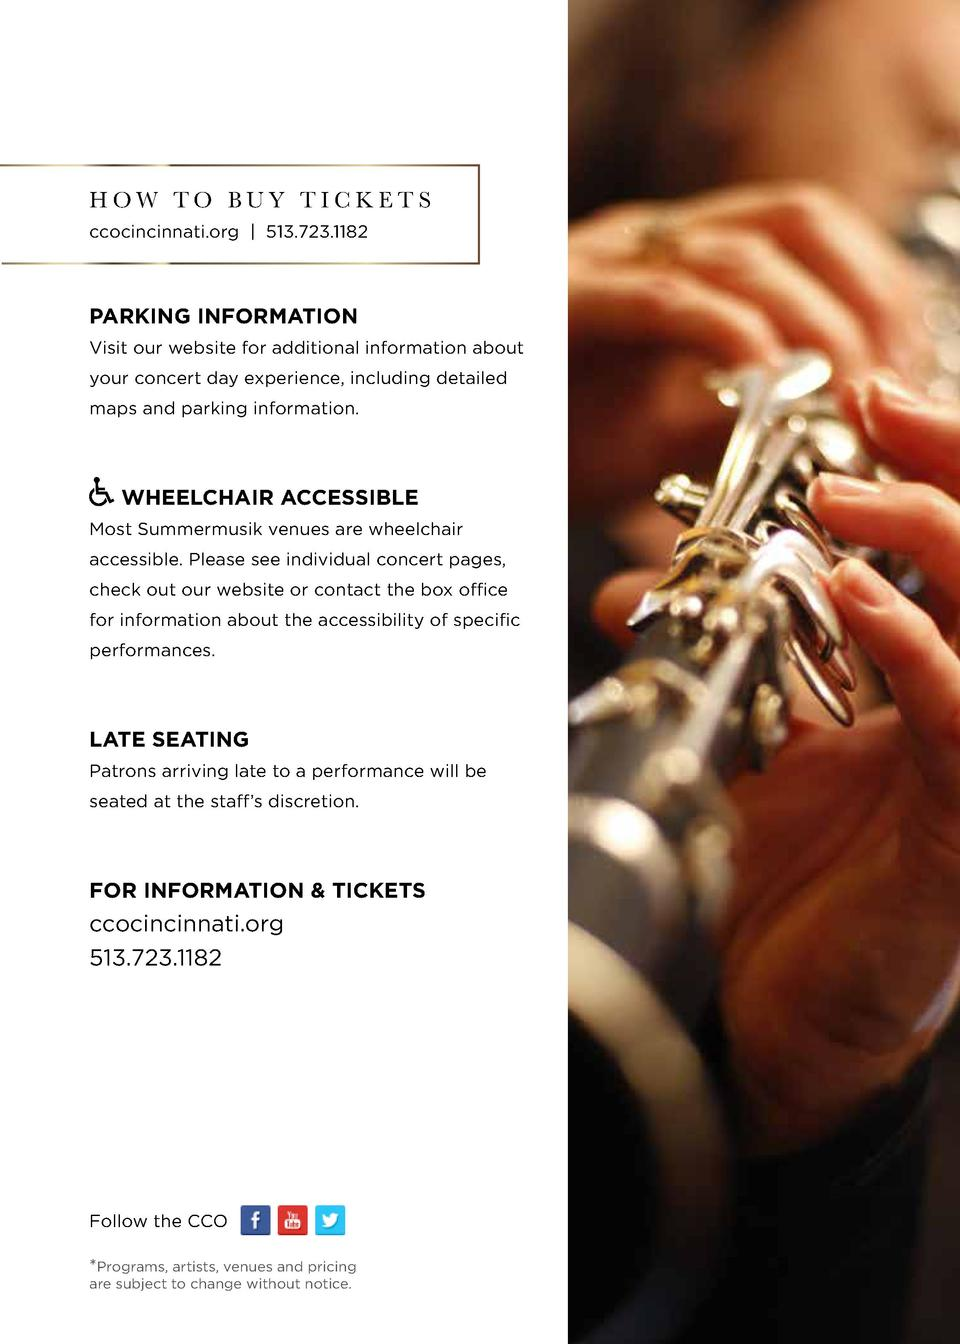 HOW TO BUY TICKETS ccocincinnati.org   513.723.1182  PARKING INFORMATION Visit our website for additional information abou...